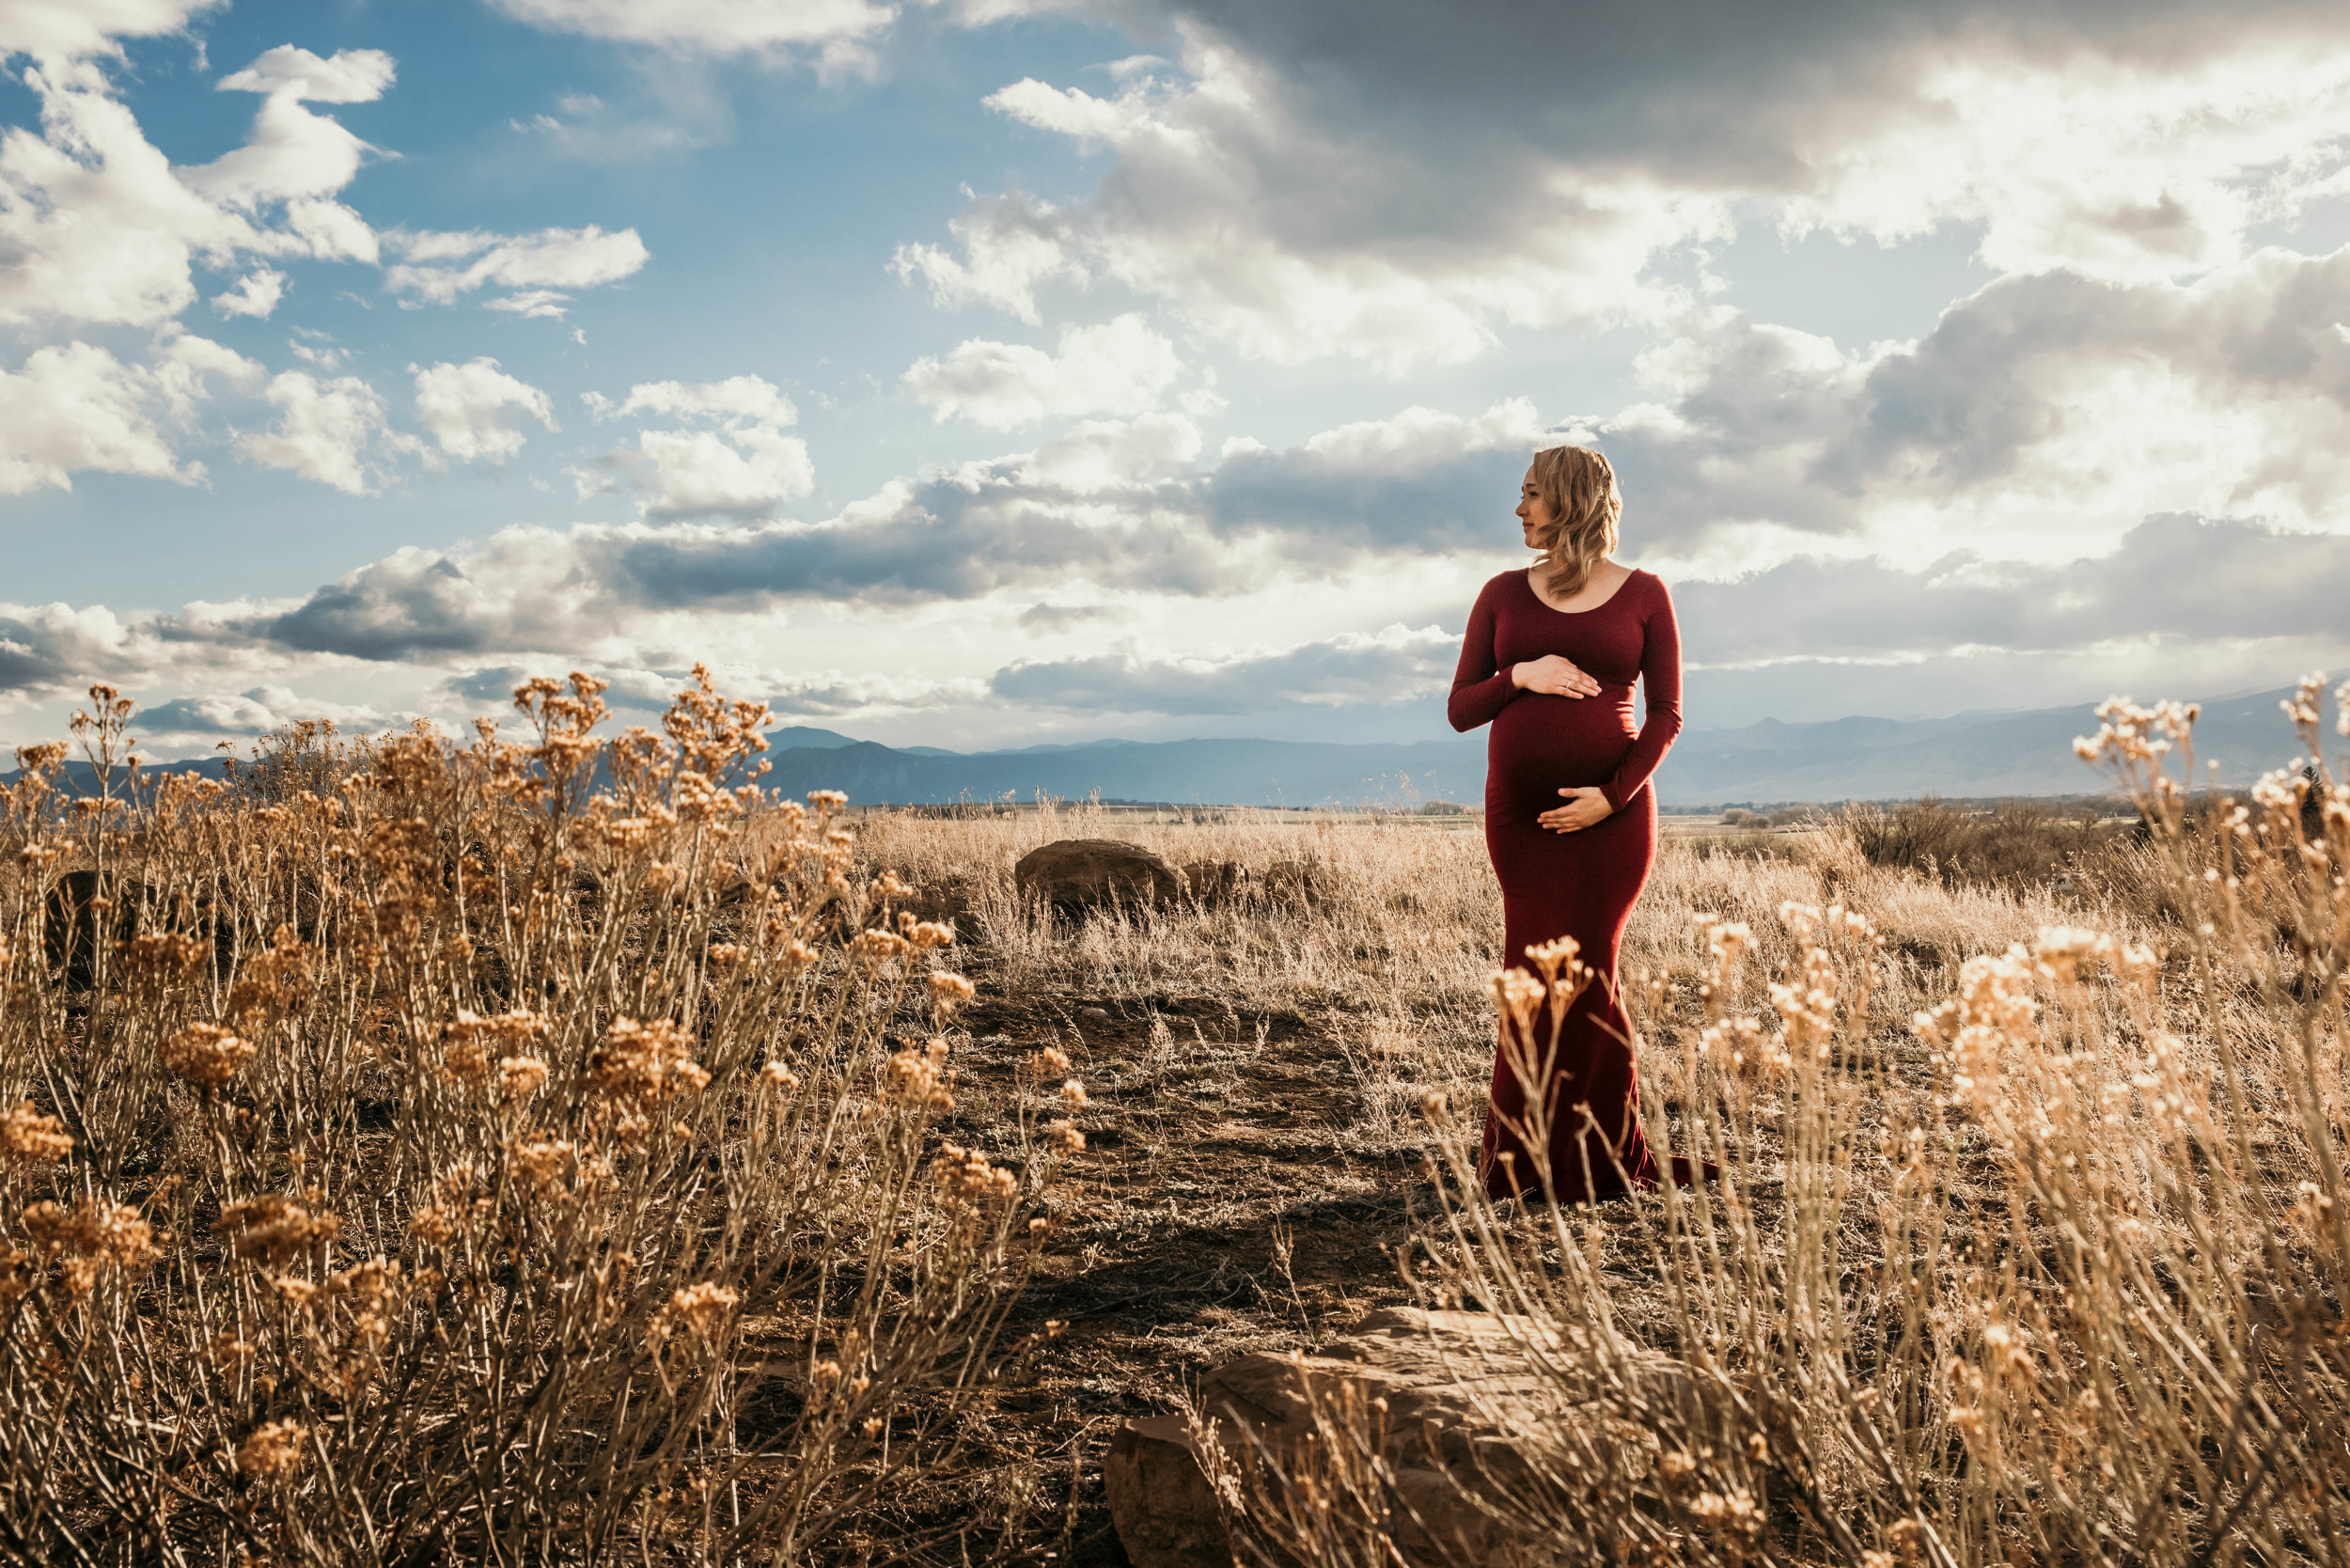 Miss. Miller's Photography | Colorado Photographer | Colorado maternity session | maternity session inspo | maternity photo poses | maternity dresses | maternity outfit ideas | rocky mountain | Photo ideas for maternity | birth announcement | Colorado skies | dirty boots and messy hair